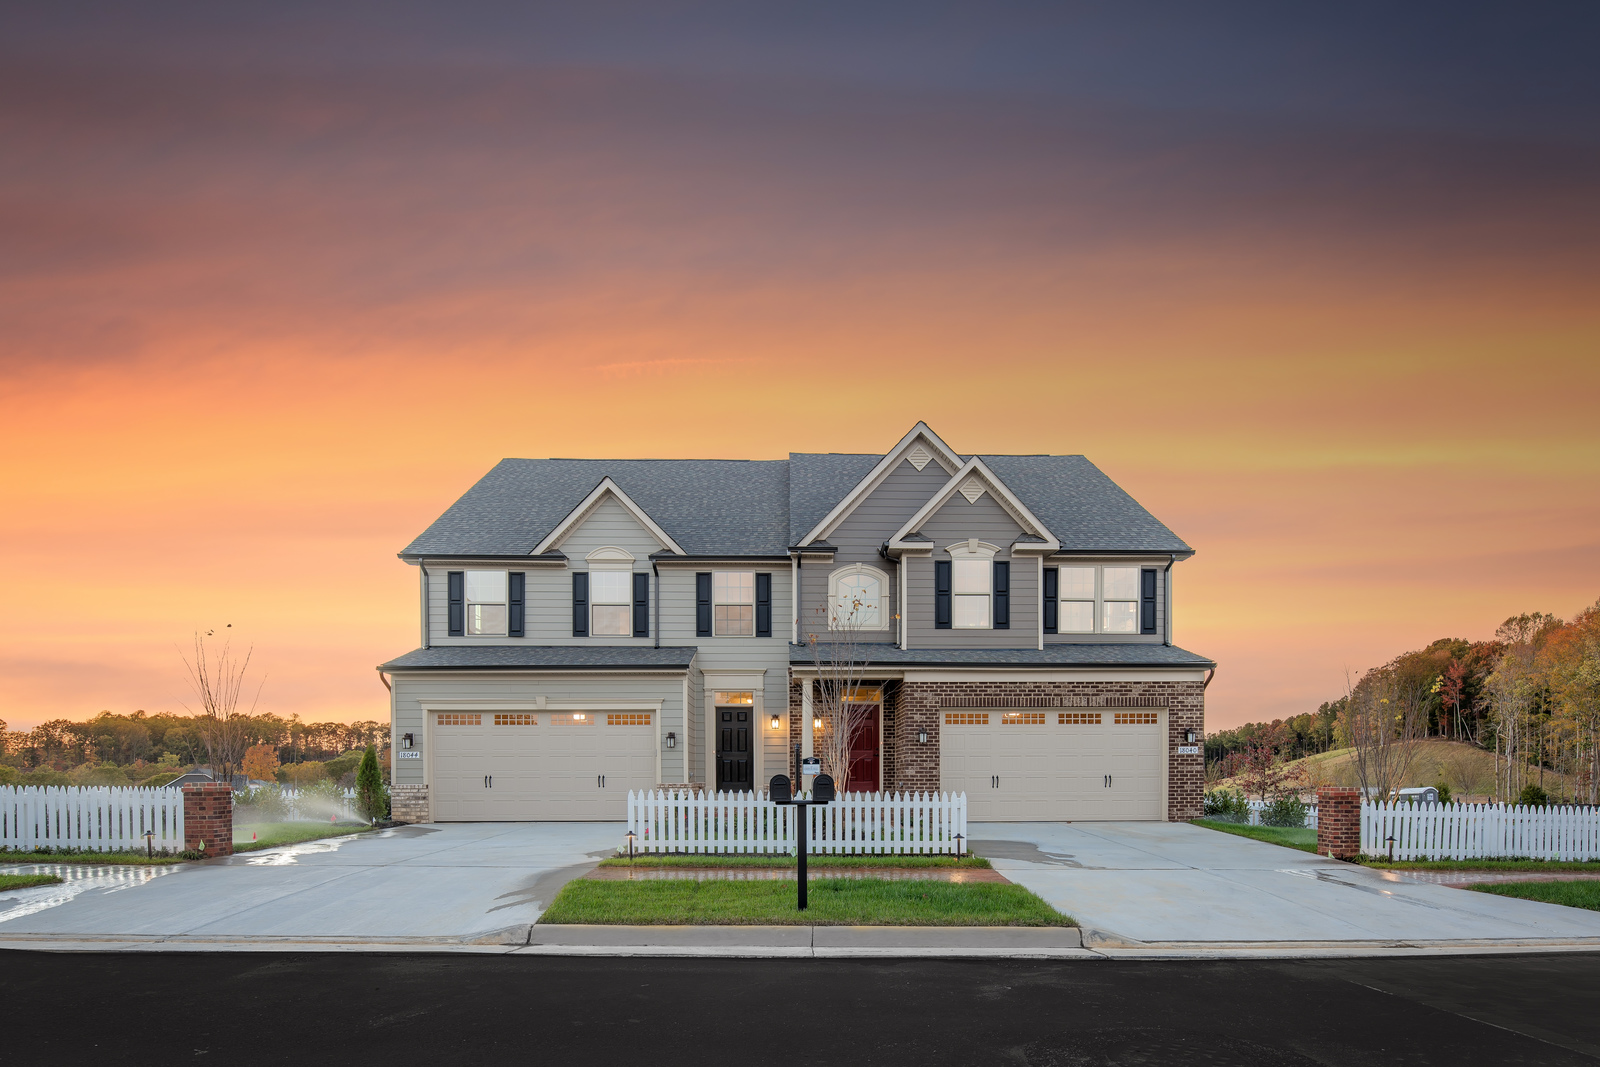 New Homes For Sale At Potomac Shores Villas In Woodbridge Va Within